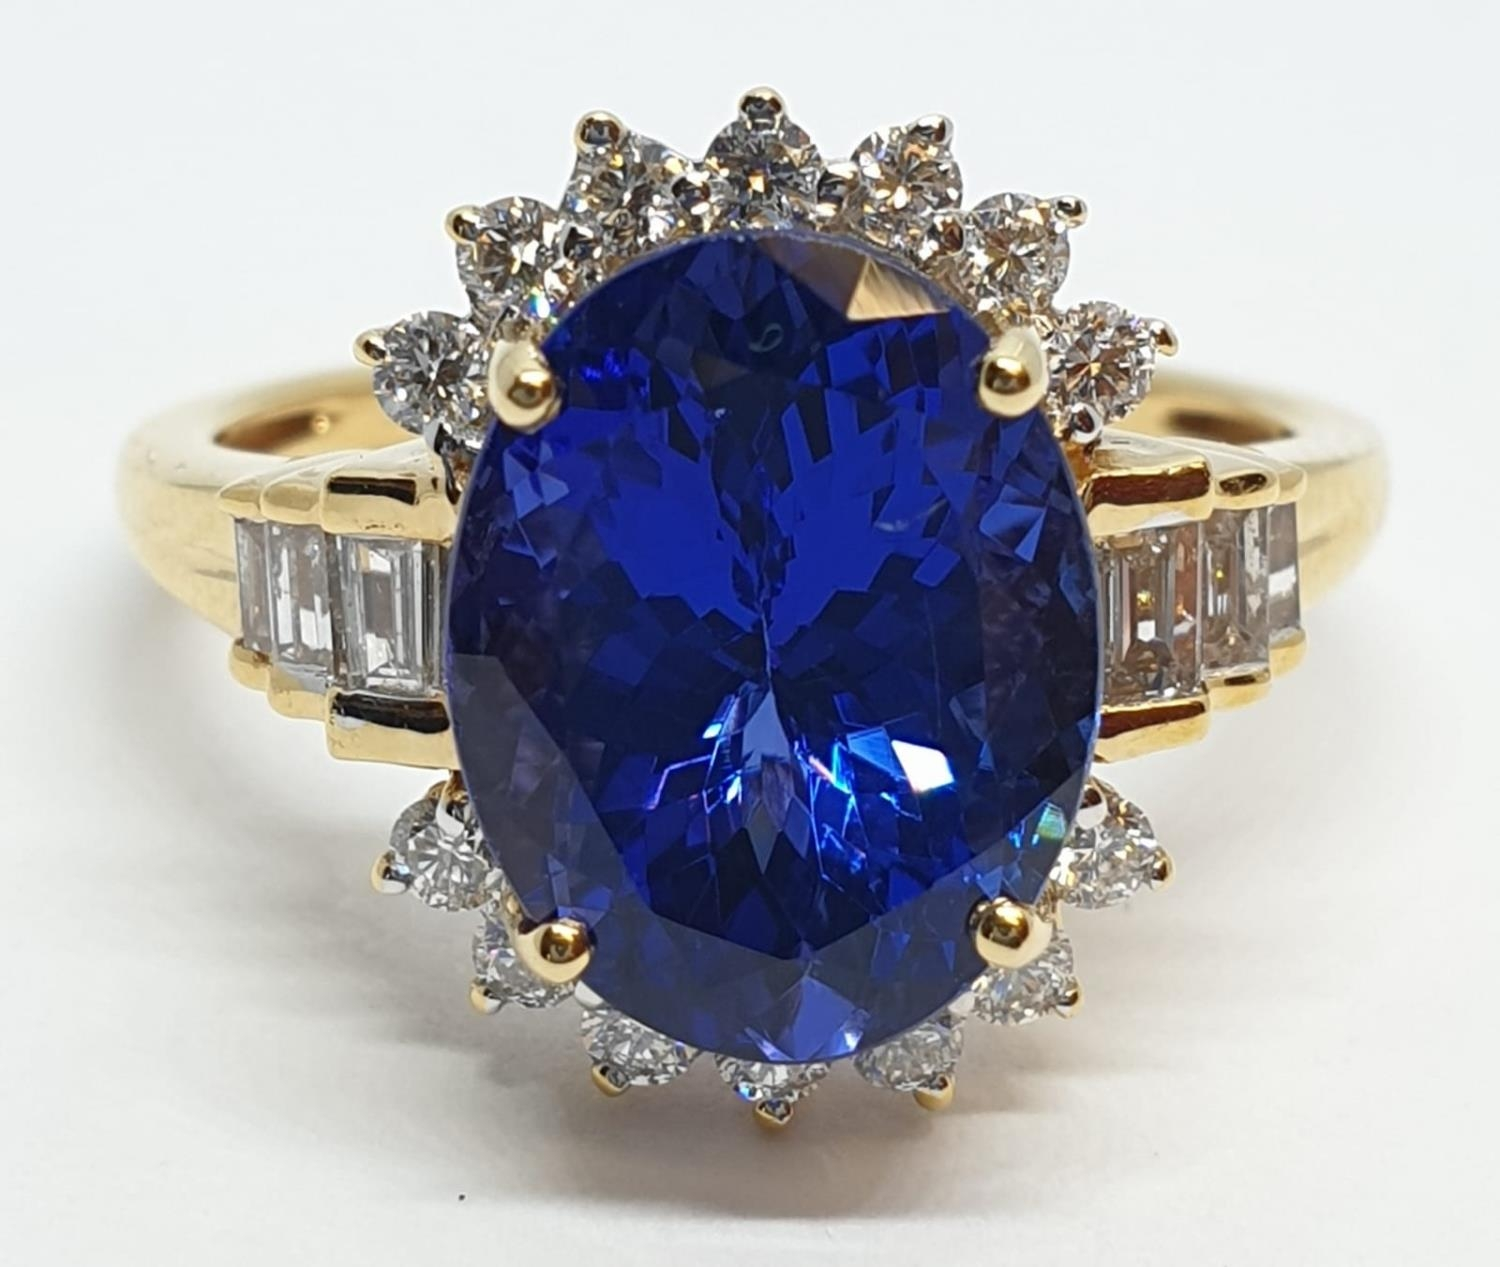 18ct yellow gold ring with 4ct tanzanite centre and further diamonds surrounding and on each